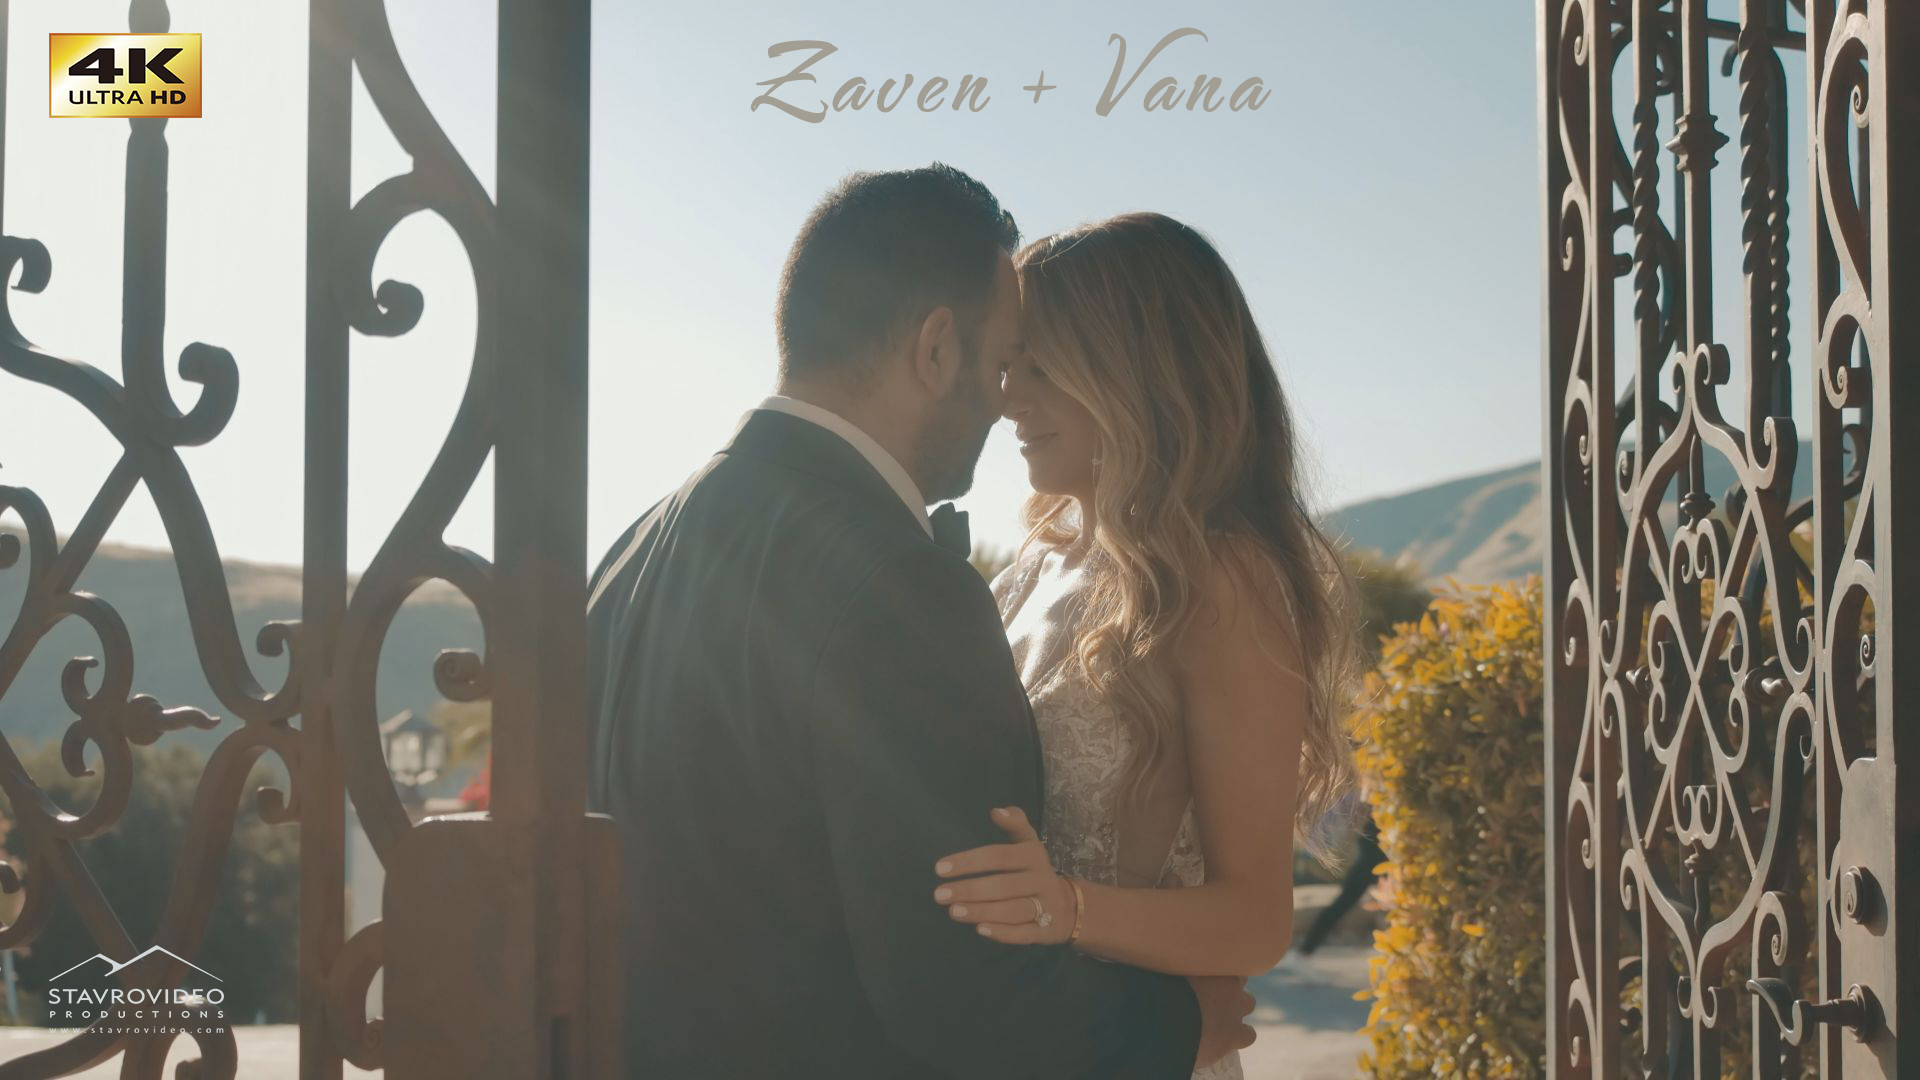 Zaven + Vana | Los Angeles, California | Hummingbird Nest Ranch